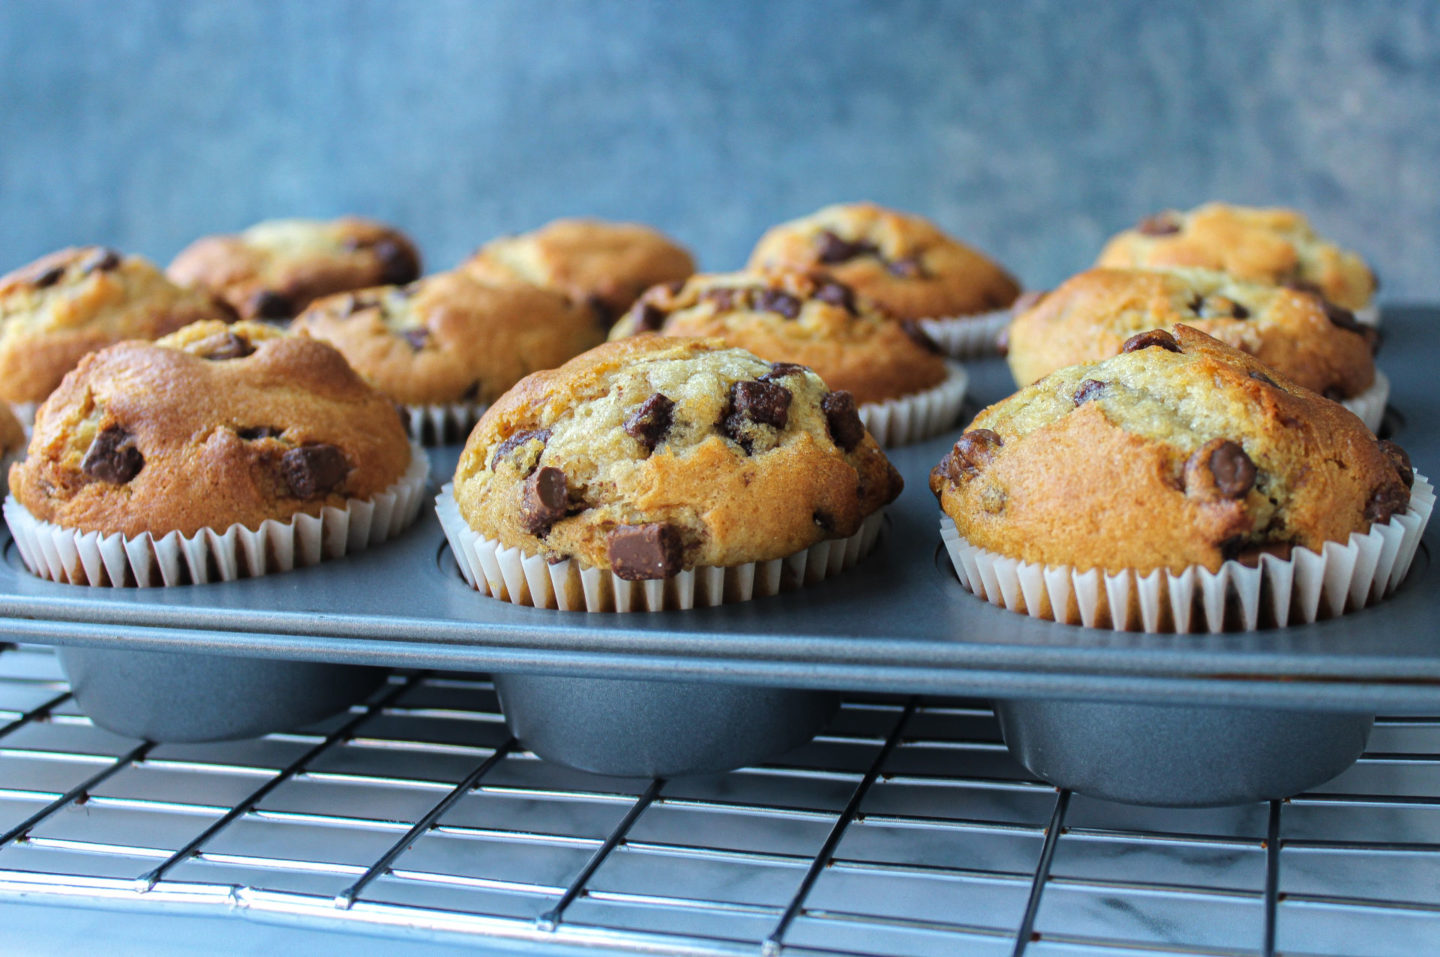 several chocolate chip muffins in a muffin tray